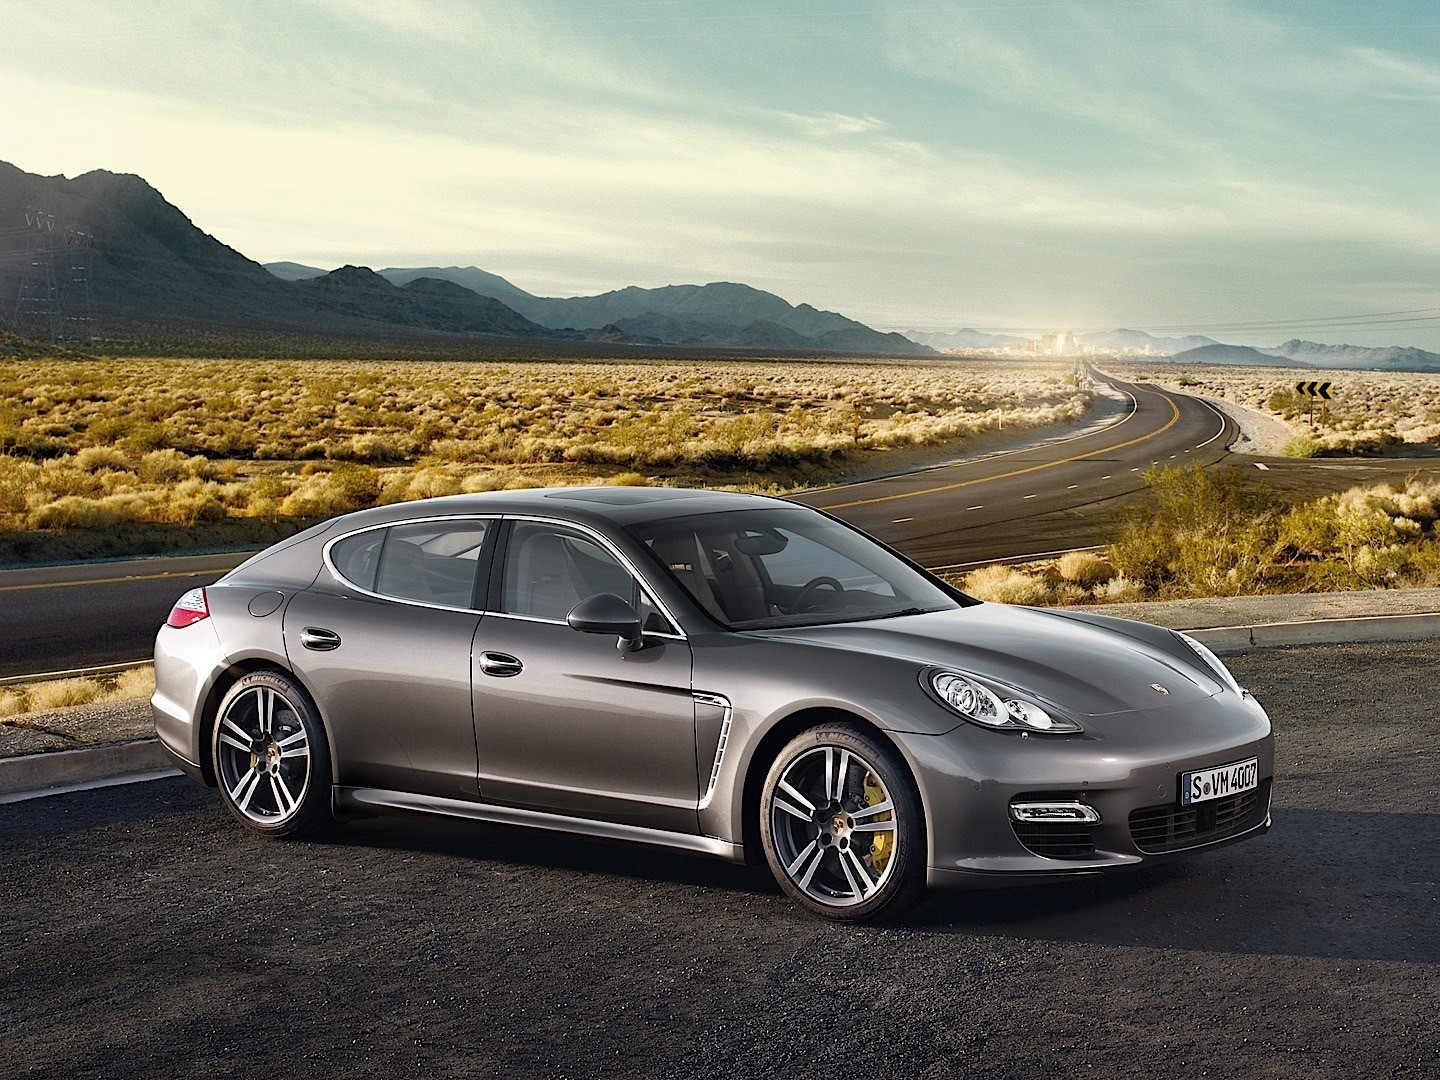 porsche panamera turbo s 907 specs 2011 2012 2013. Black Bedroom Furniture Sets. Home Design Ideas